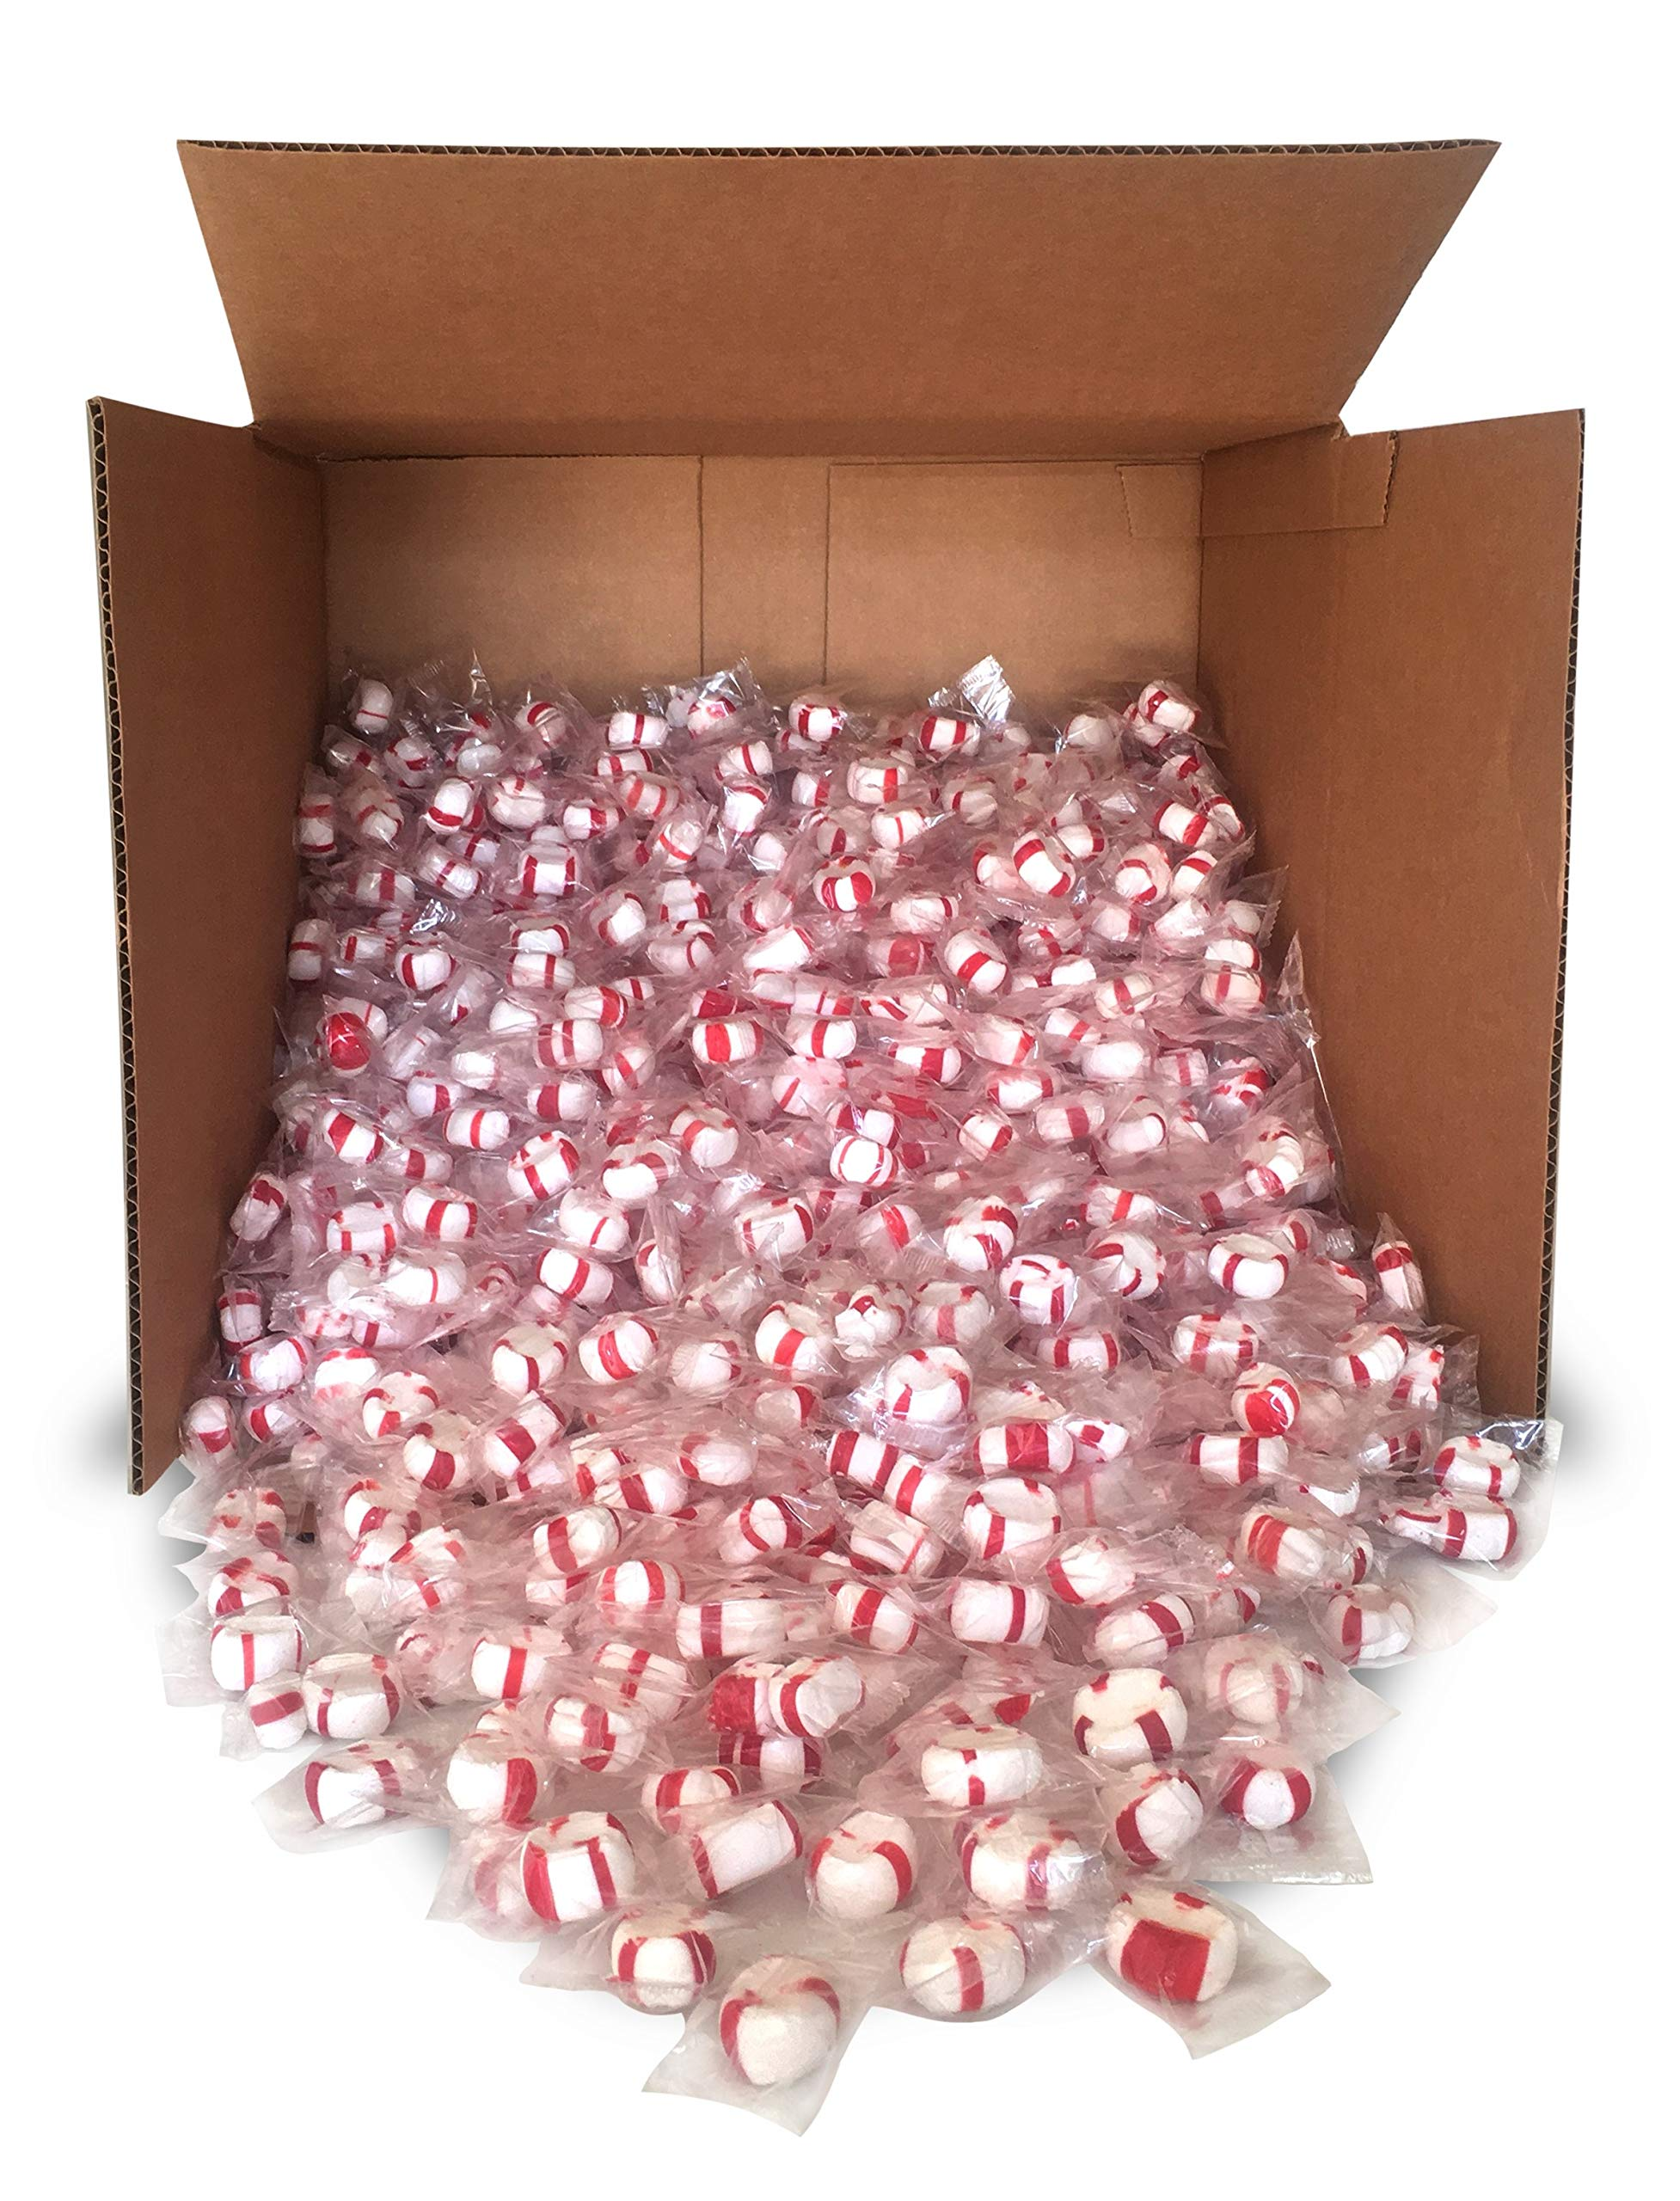 Red Bird Soft Peppermint Puff Candy Bulk, 1000 pieces individually wrapped, made with 100% cane sugar and natural peppermint oil by RED BIRD SOUTHERN REFRESH - MINTS